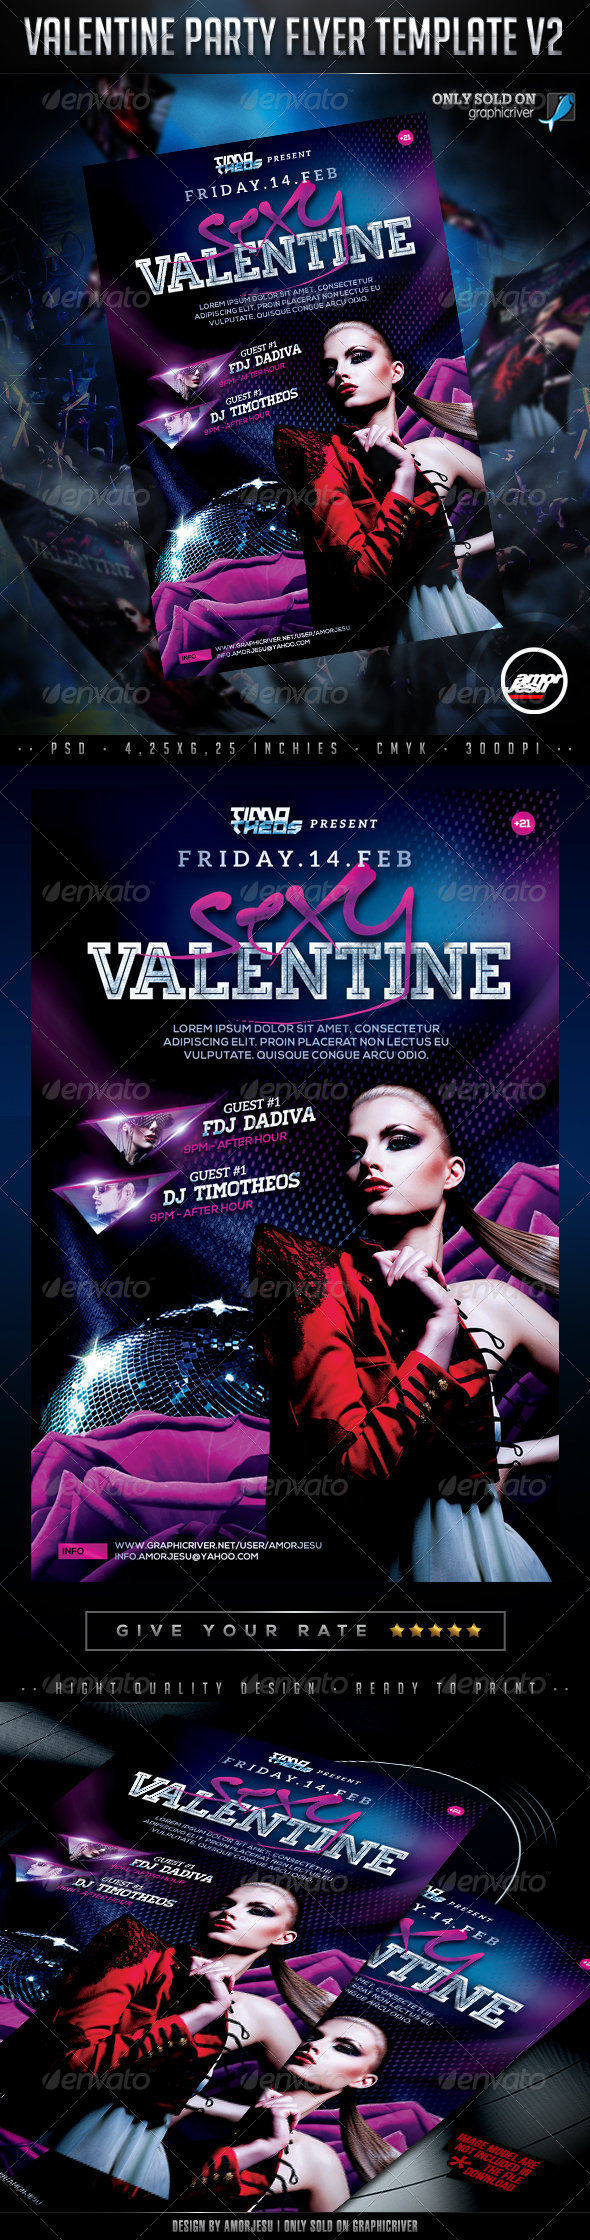 Valentine Party Flyer Template V2 - Clubs & Parties Events